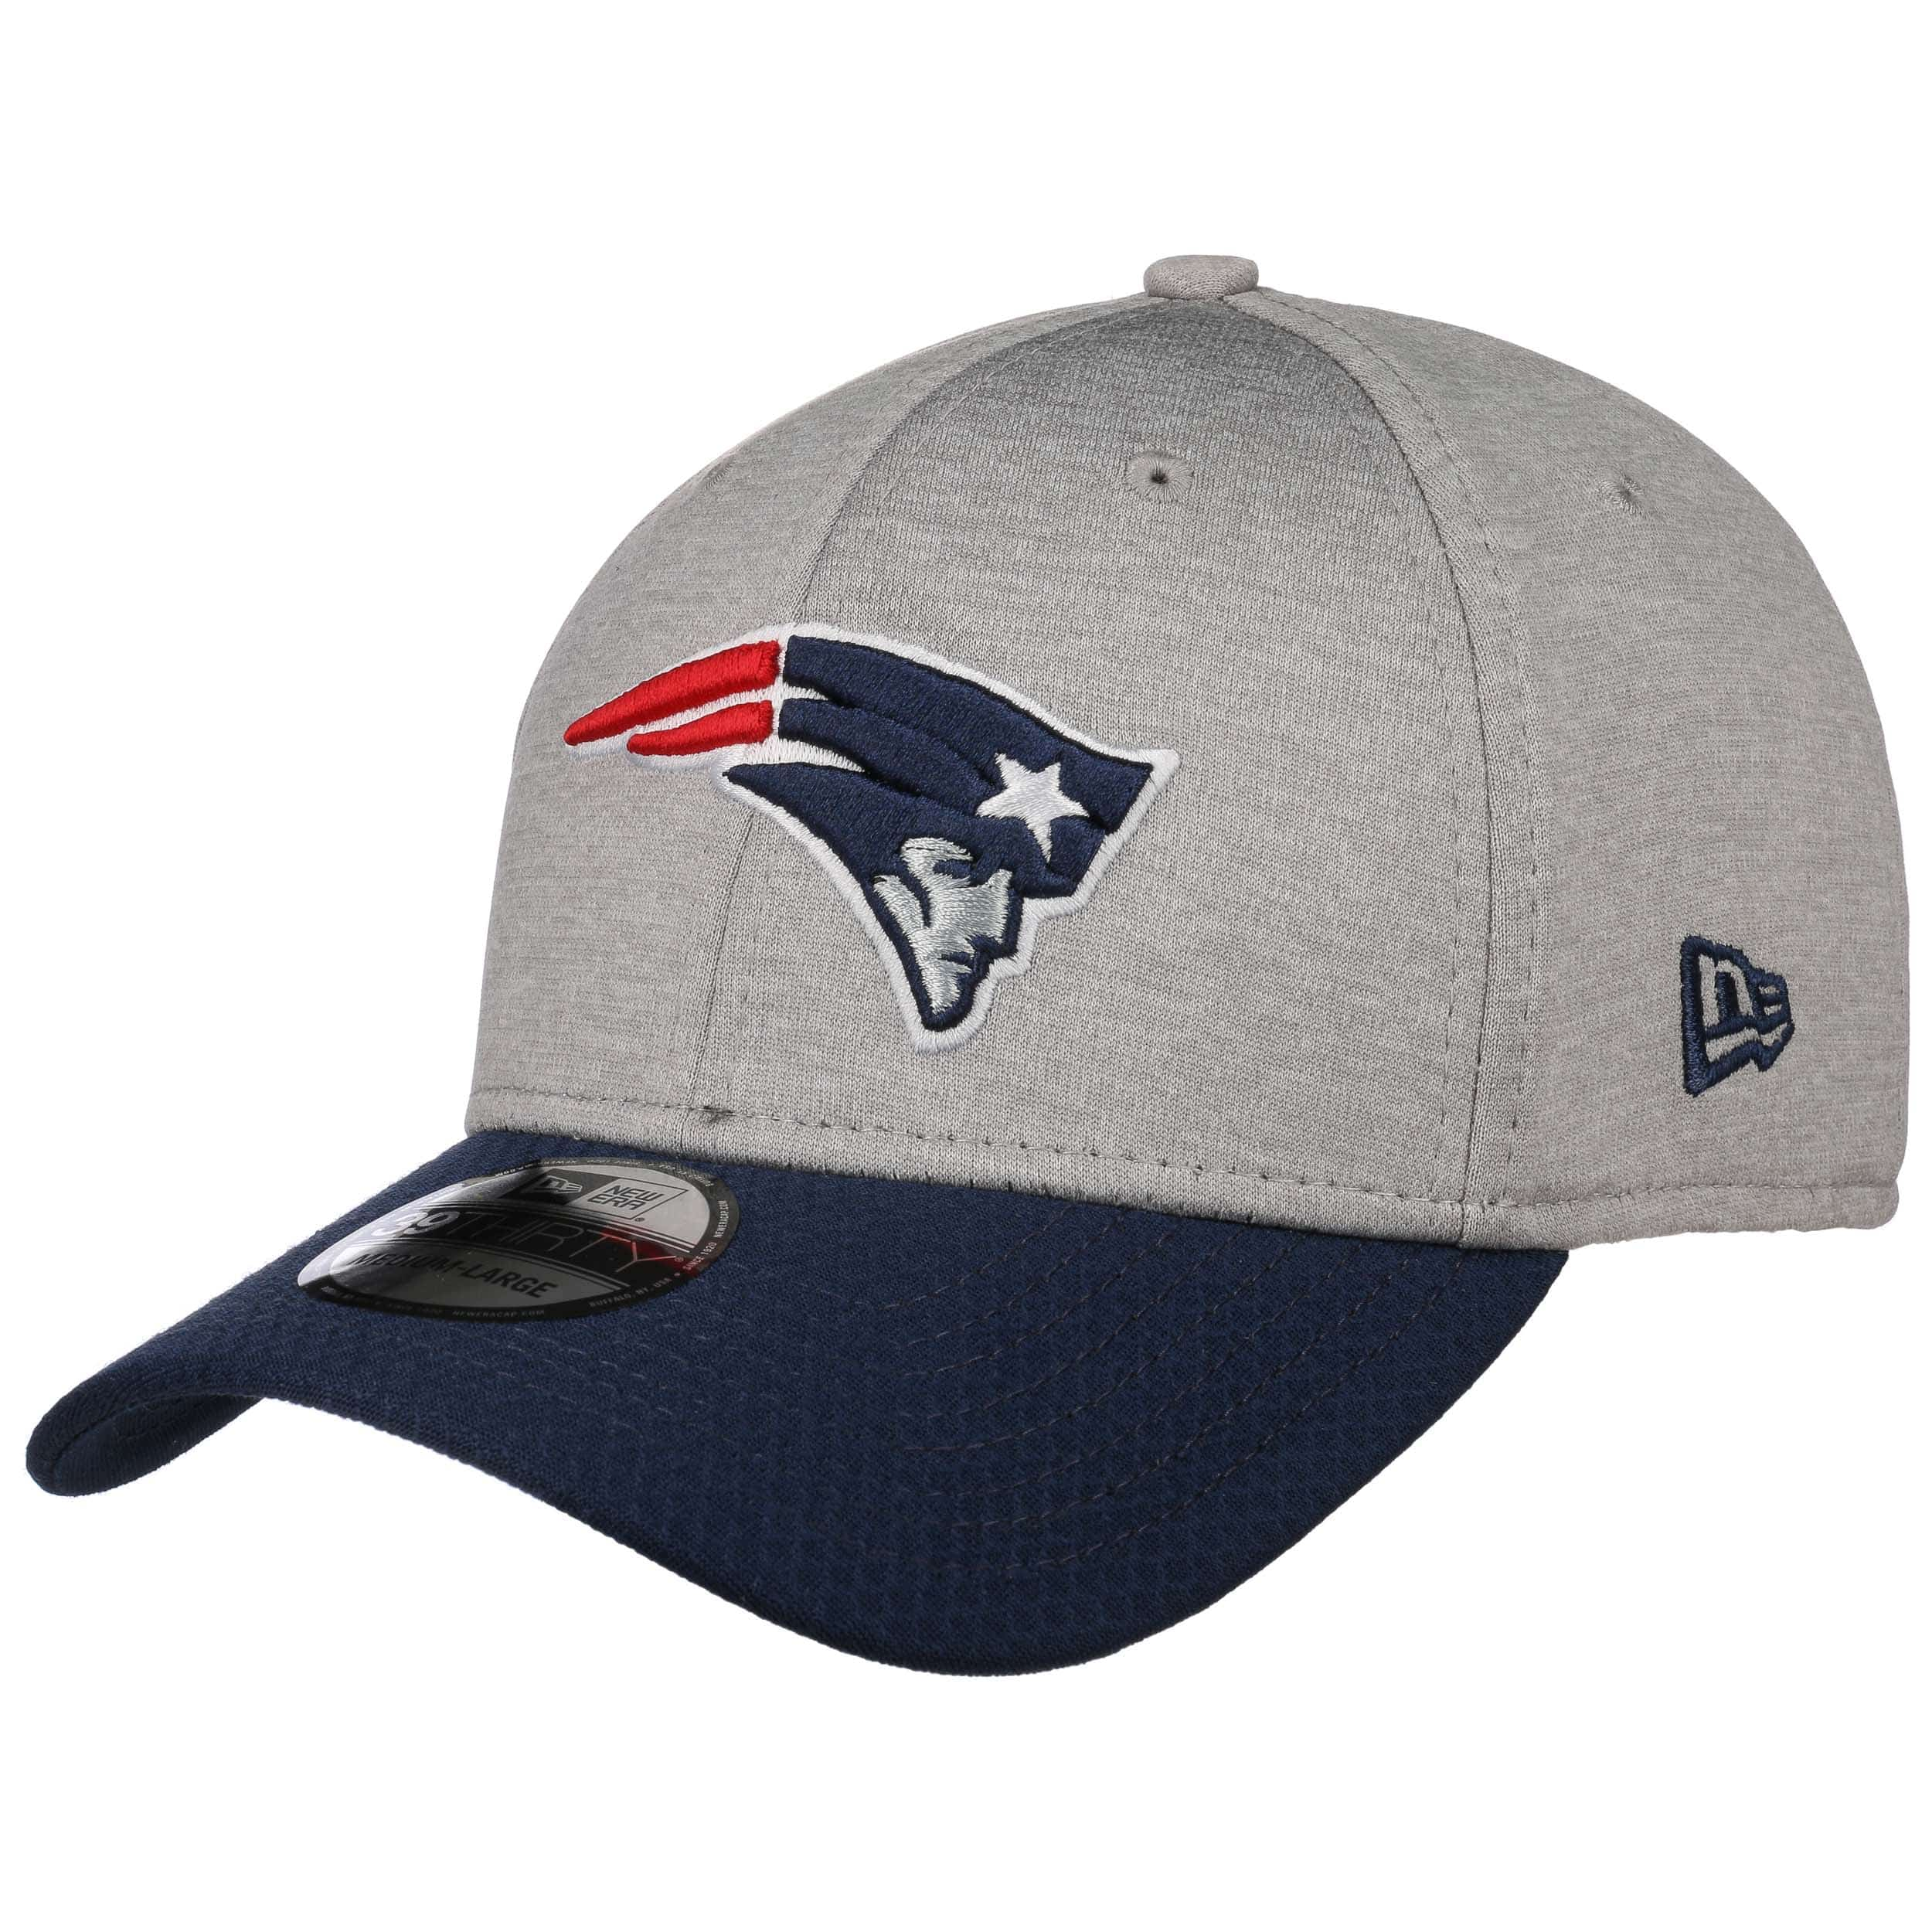 39thirty jersey hex patriots cap by new era 31 95. Black Bedroom Furniture Sets. Home Design Ideas